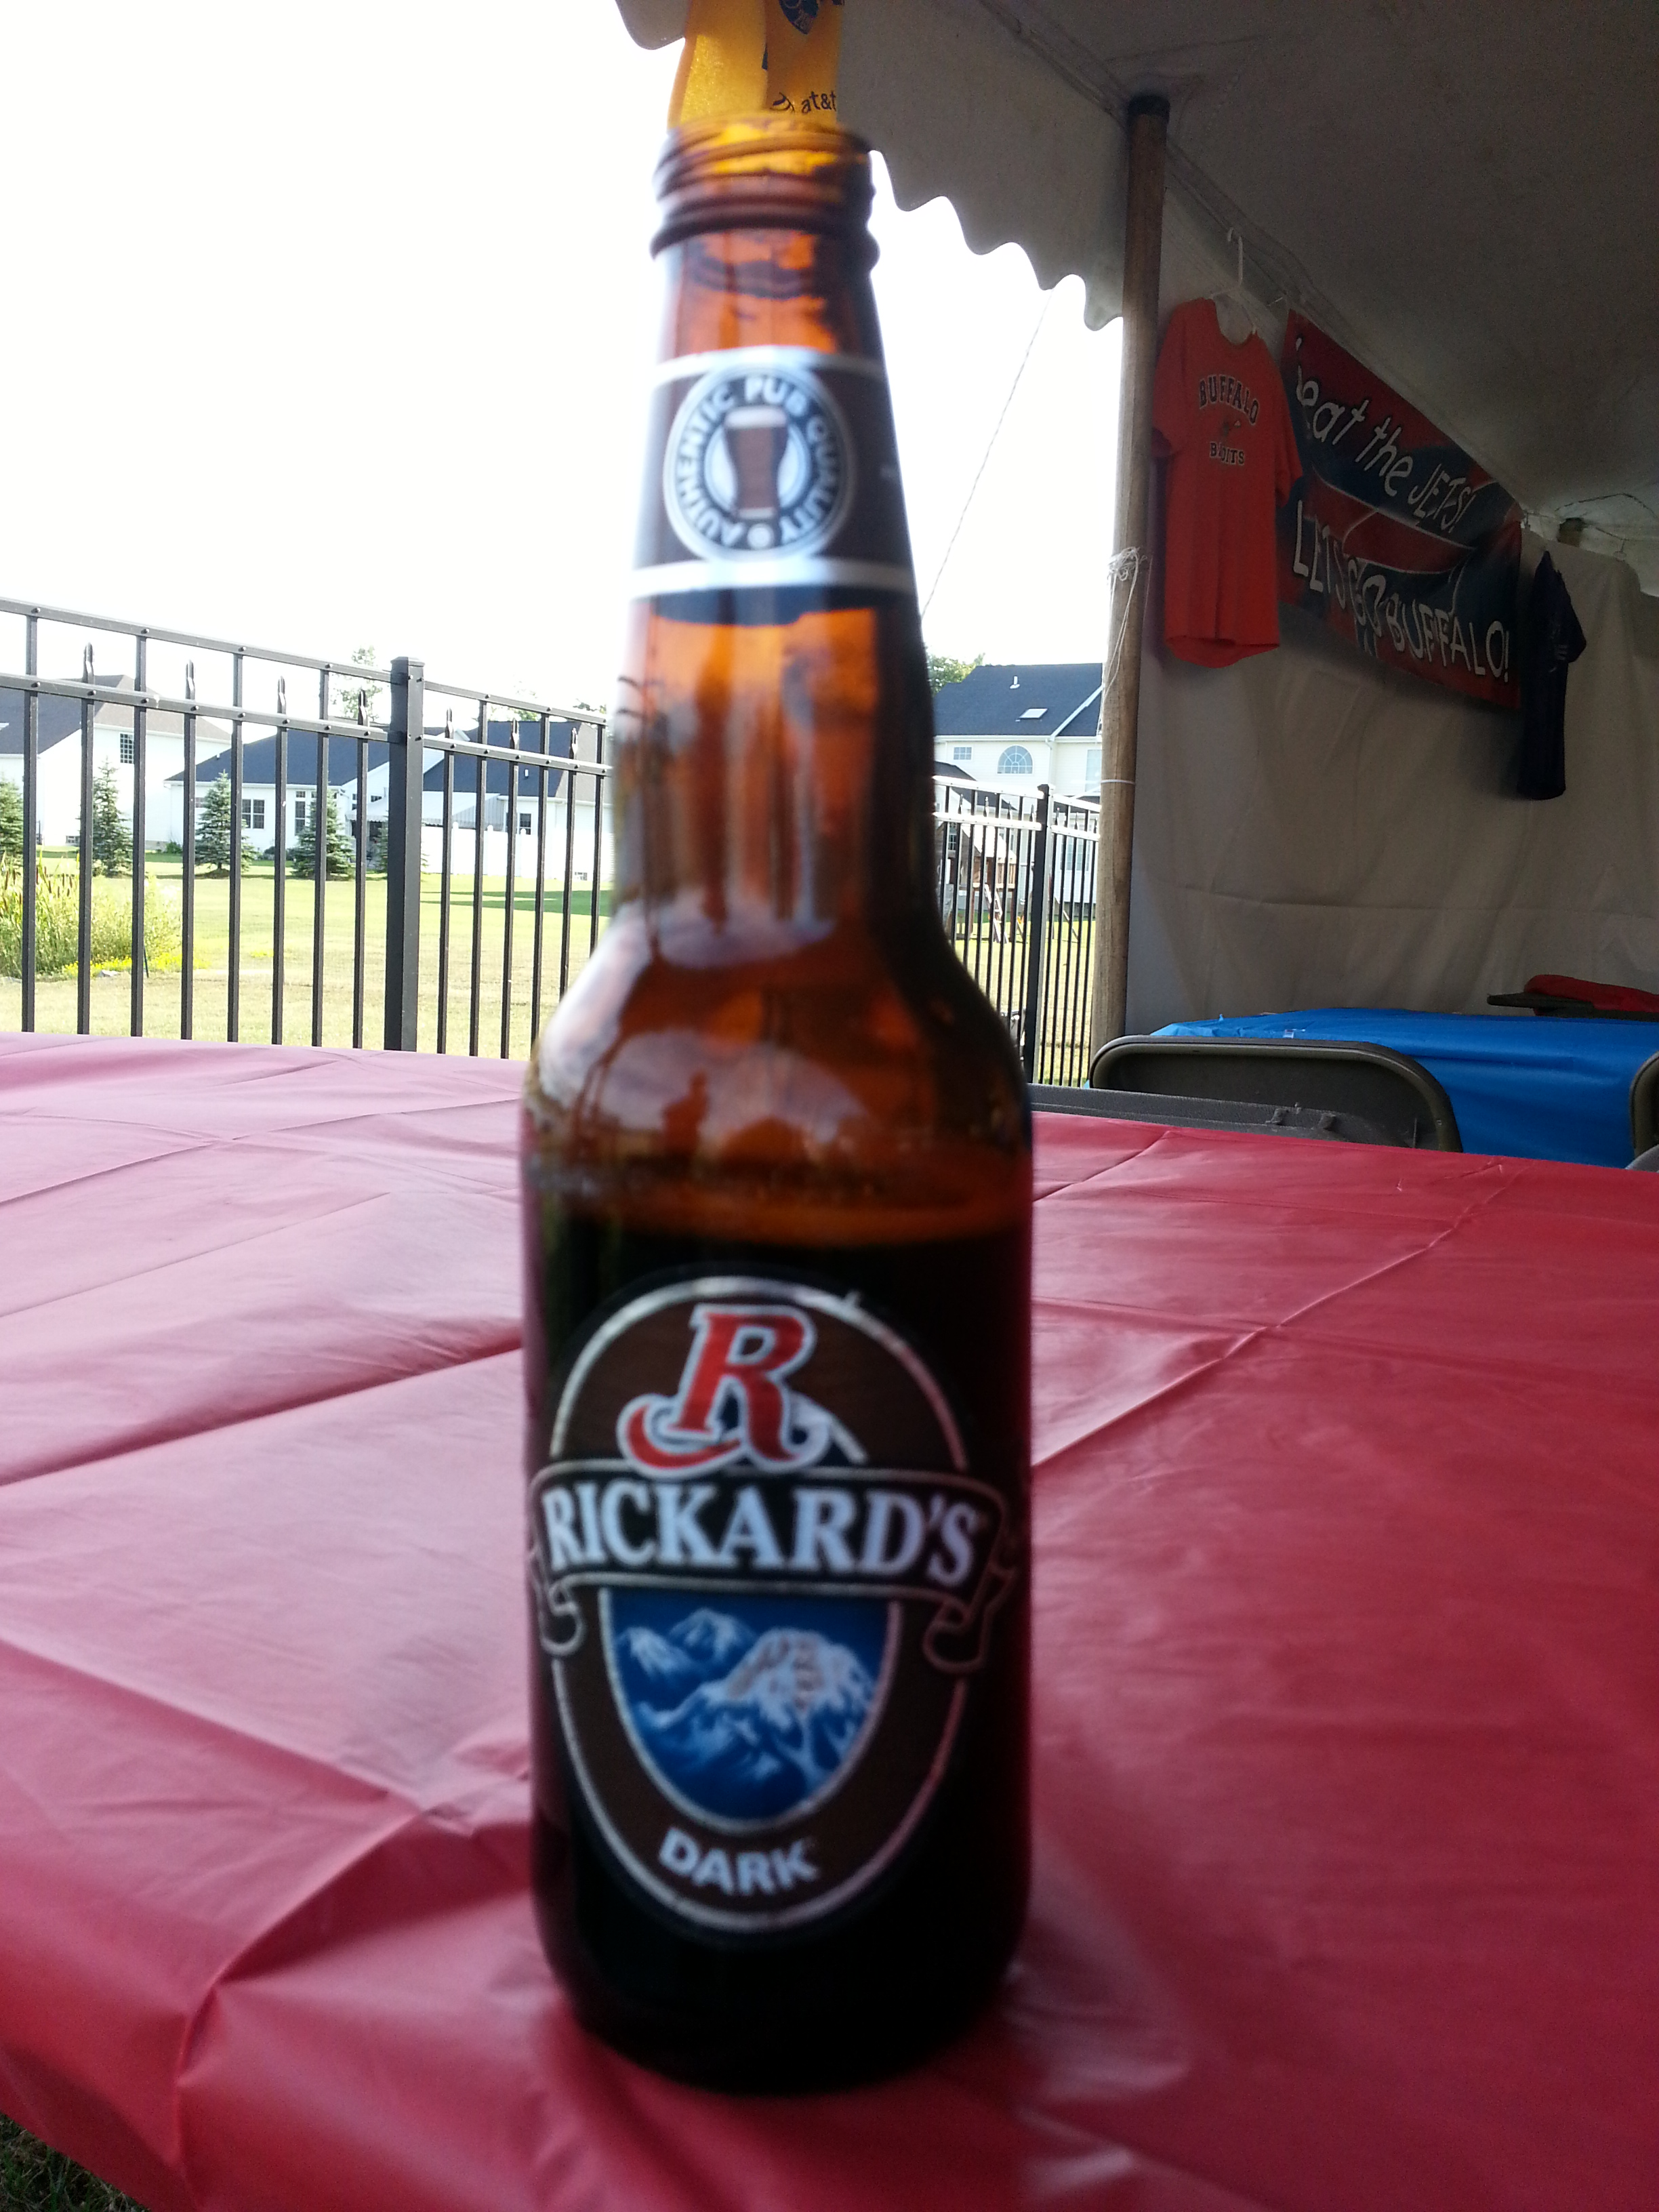 Rickards Dark Porter